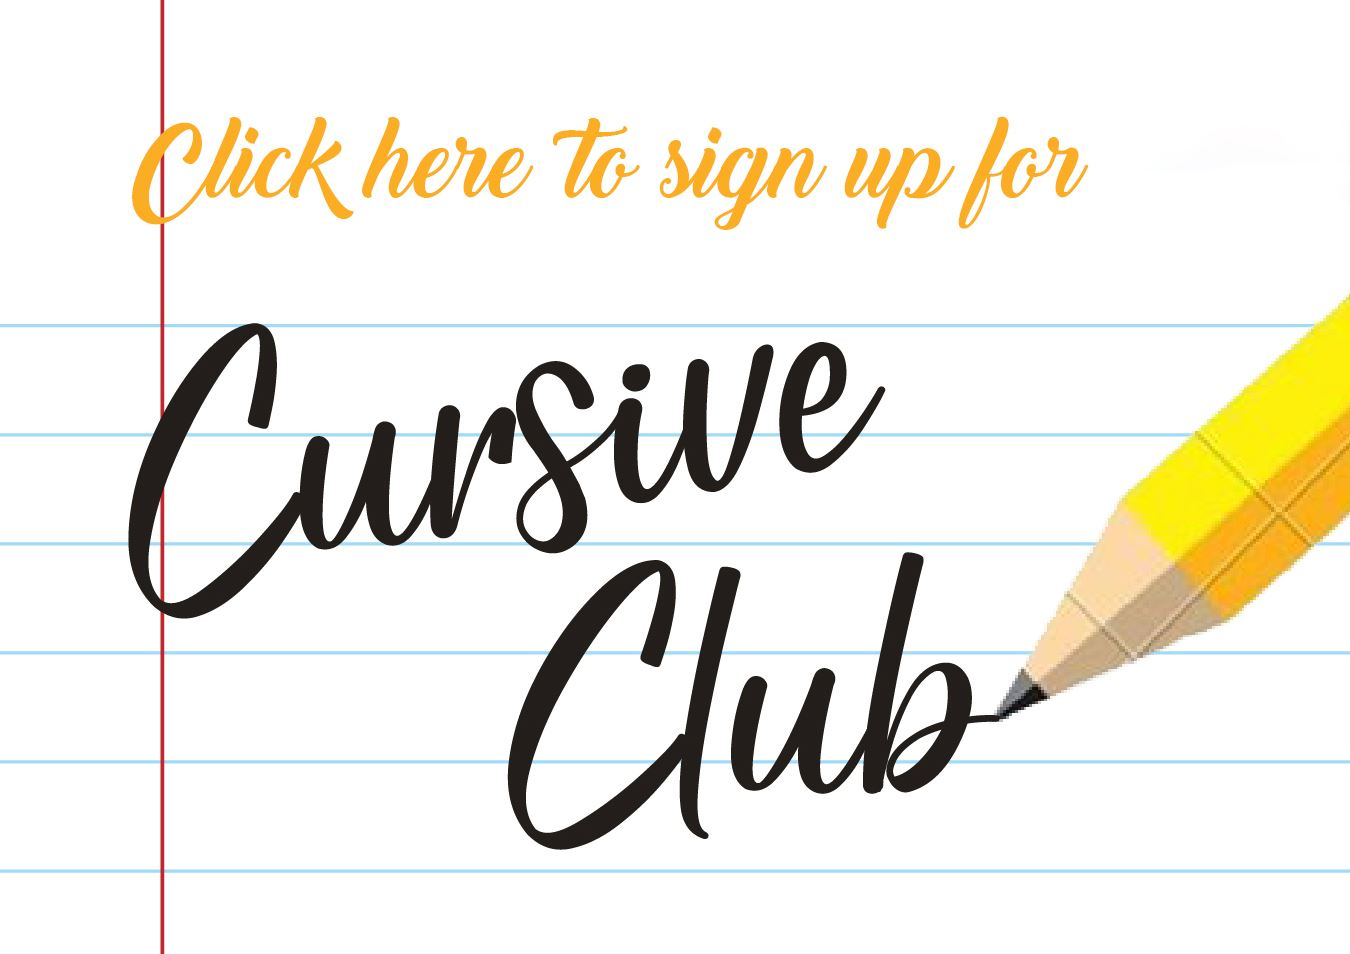 Cursive Club Sign Up Opens in new window